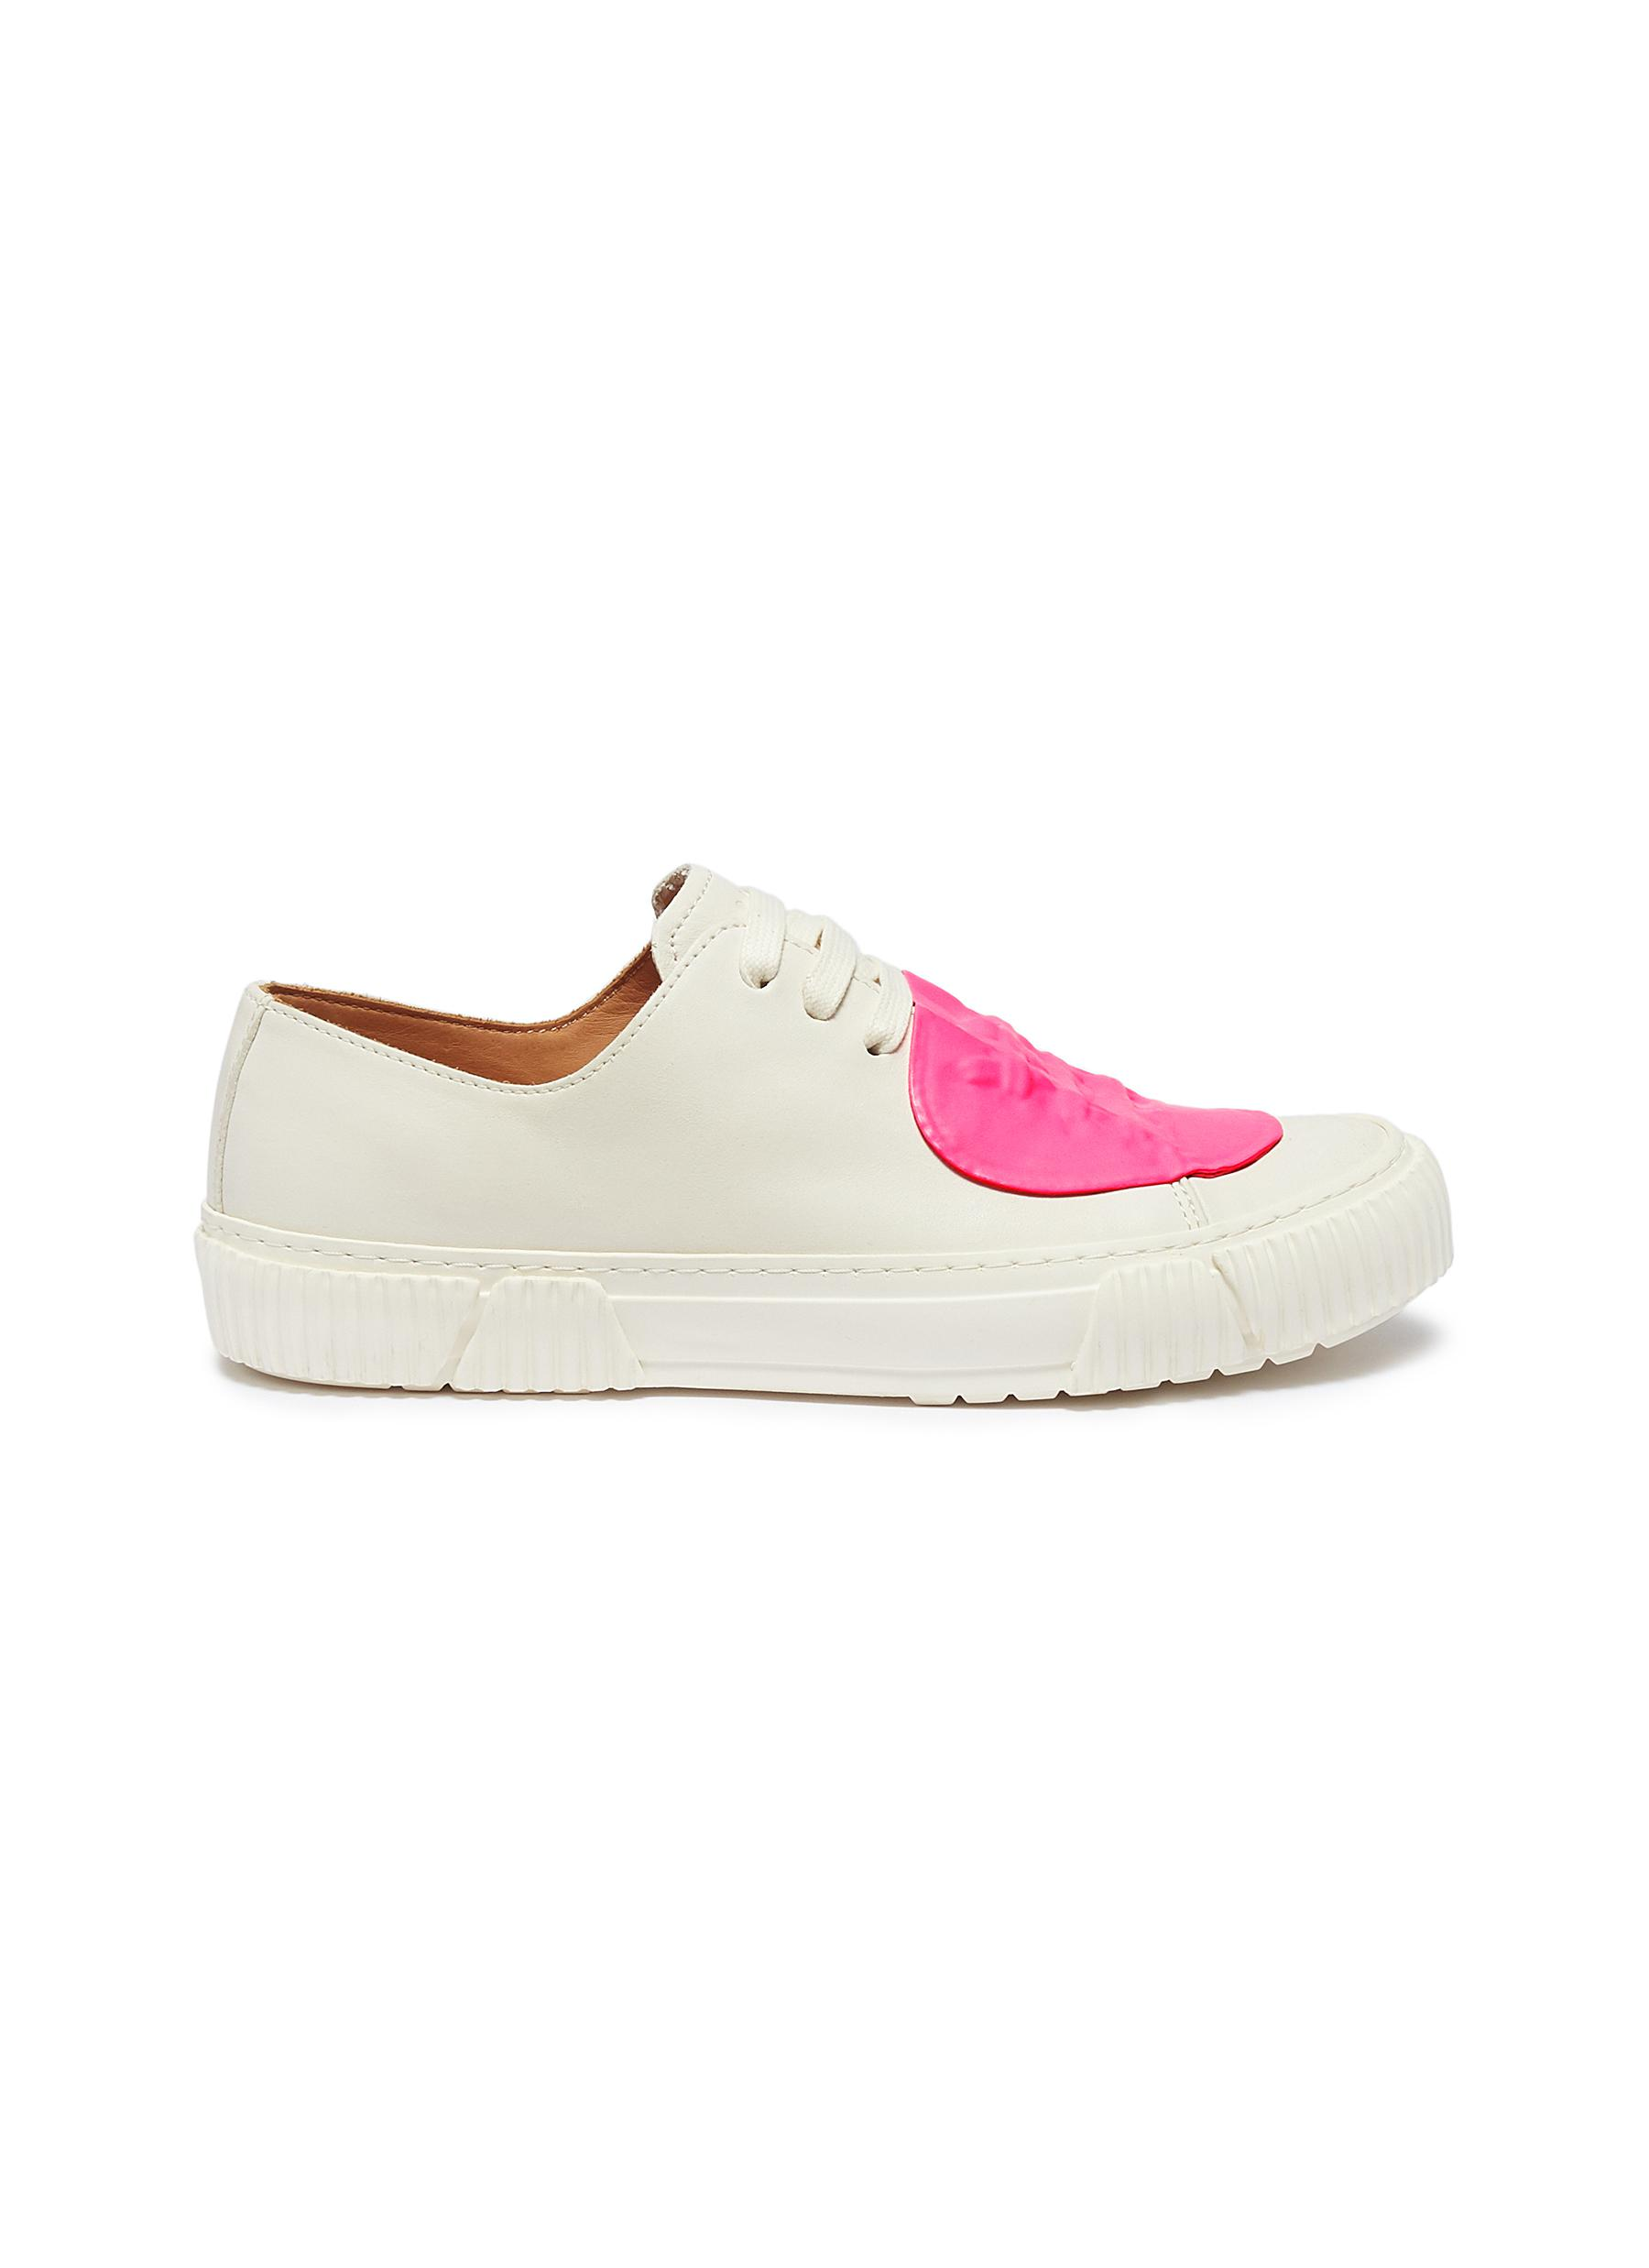 Rubber patch leather low top sneakers by both